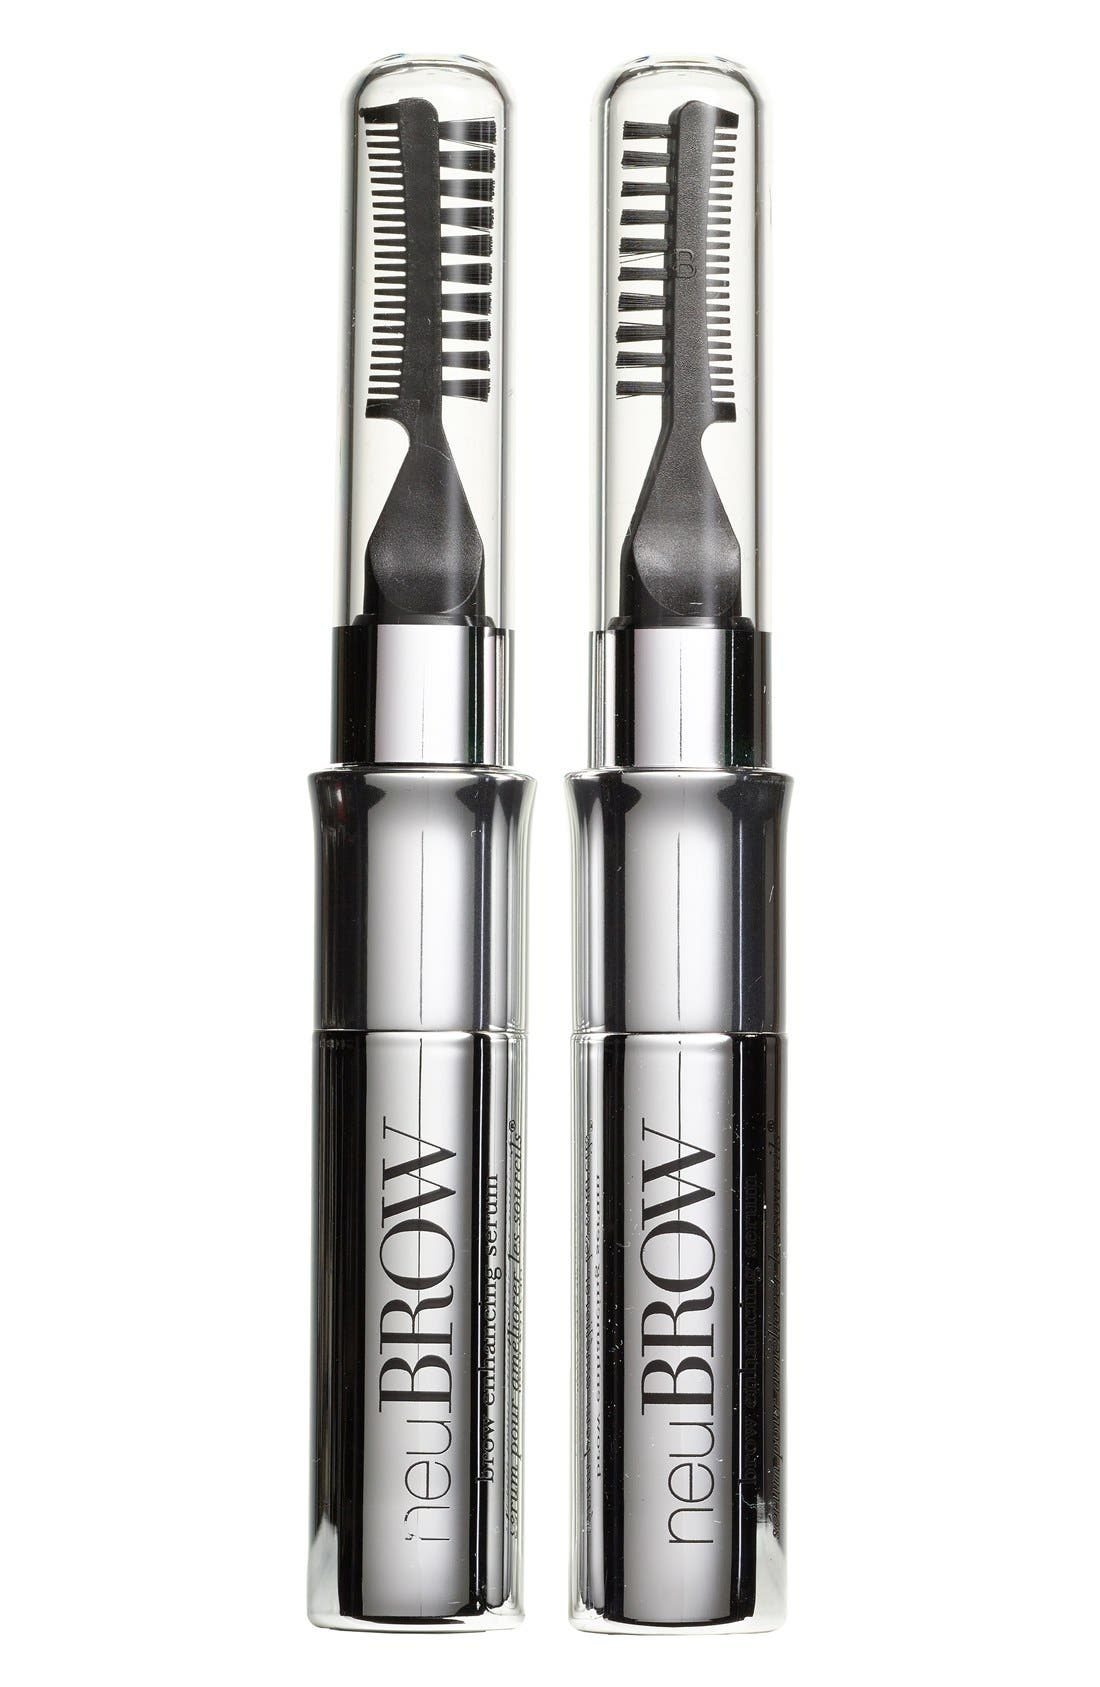 neuLASH® neuBROW® Brow Enhancing Serum Duo ($200 Value)